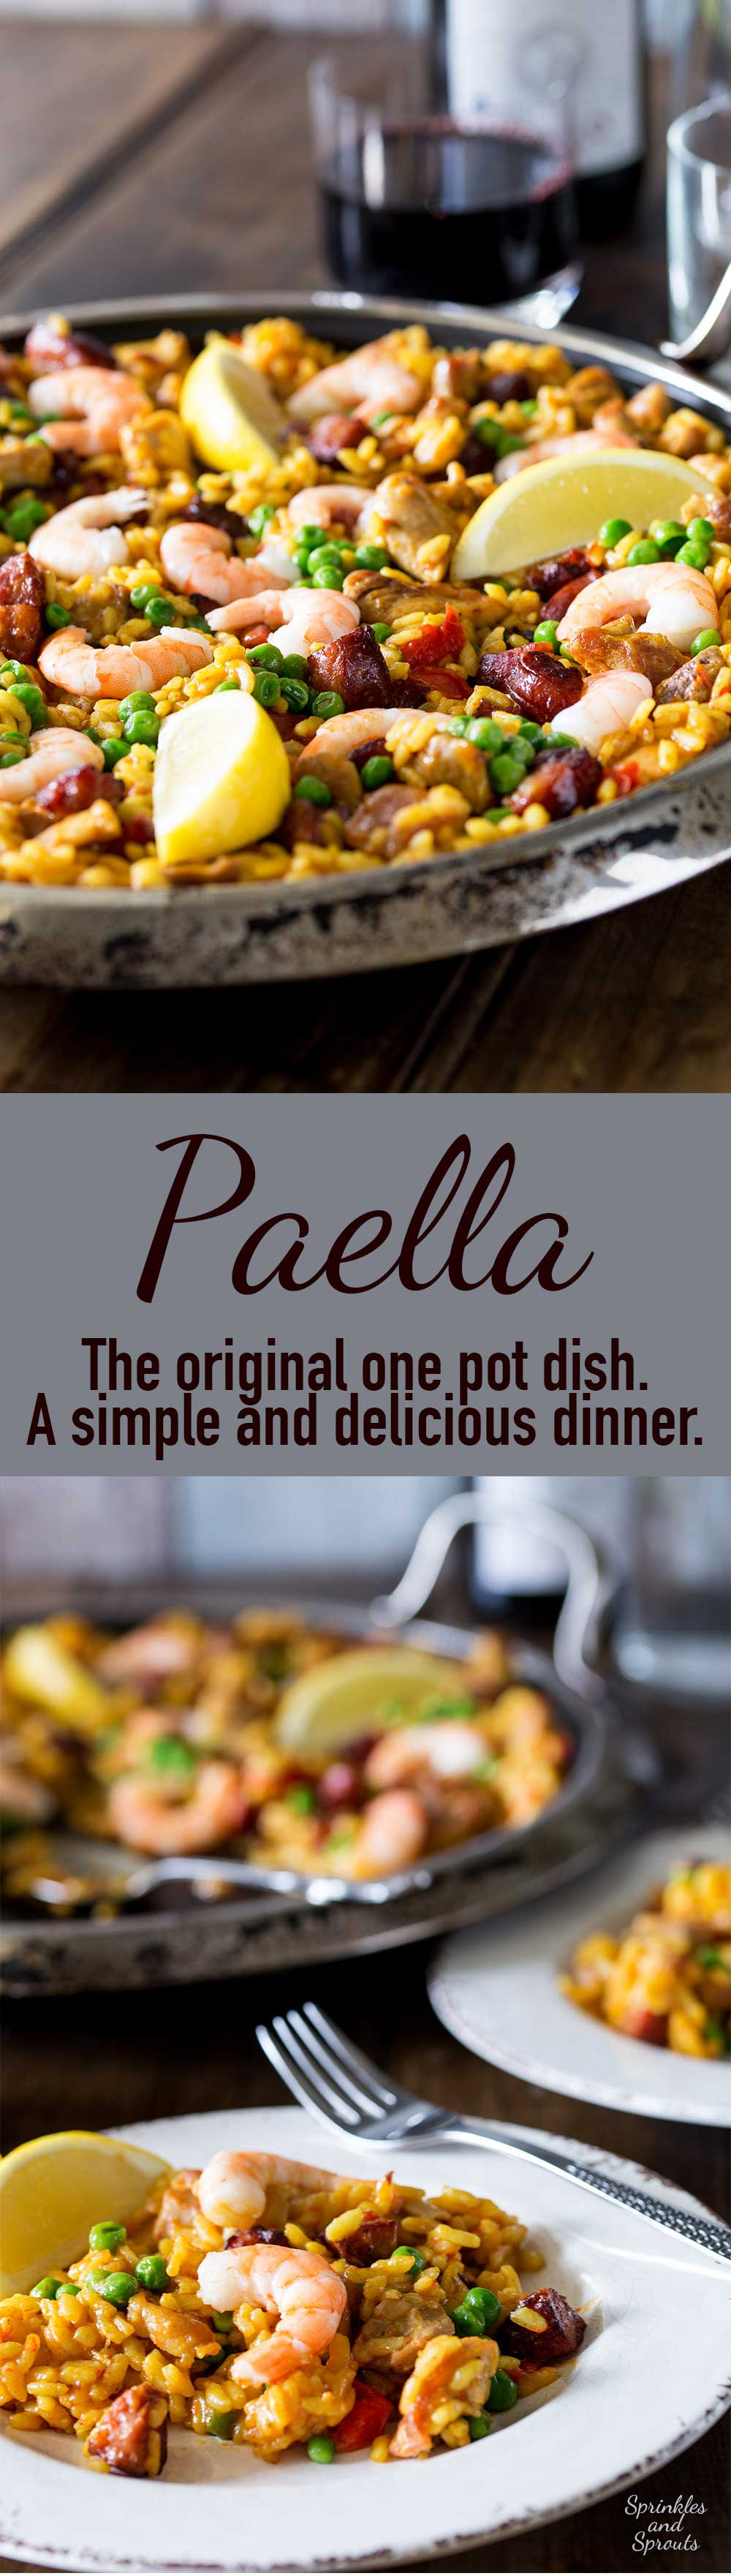 Paella is the ultimate one pan dish. Rice, meat and fish are cooked together in a flavourful stock in this easy and delicious Spanish classic.